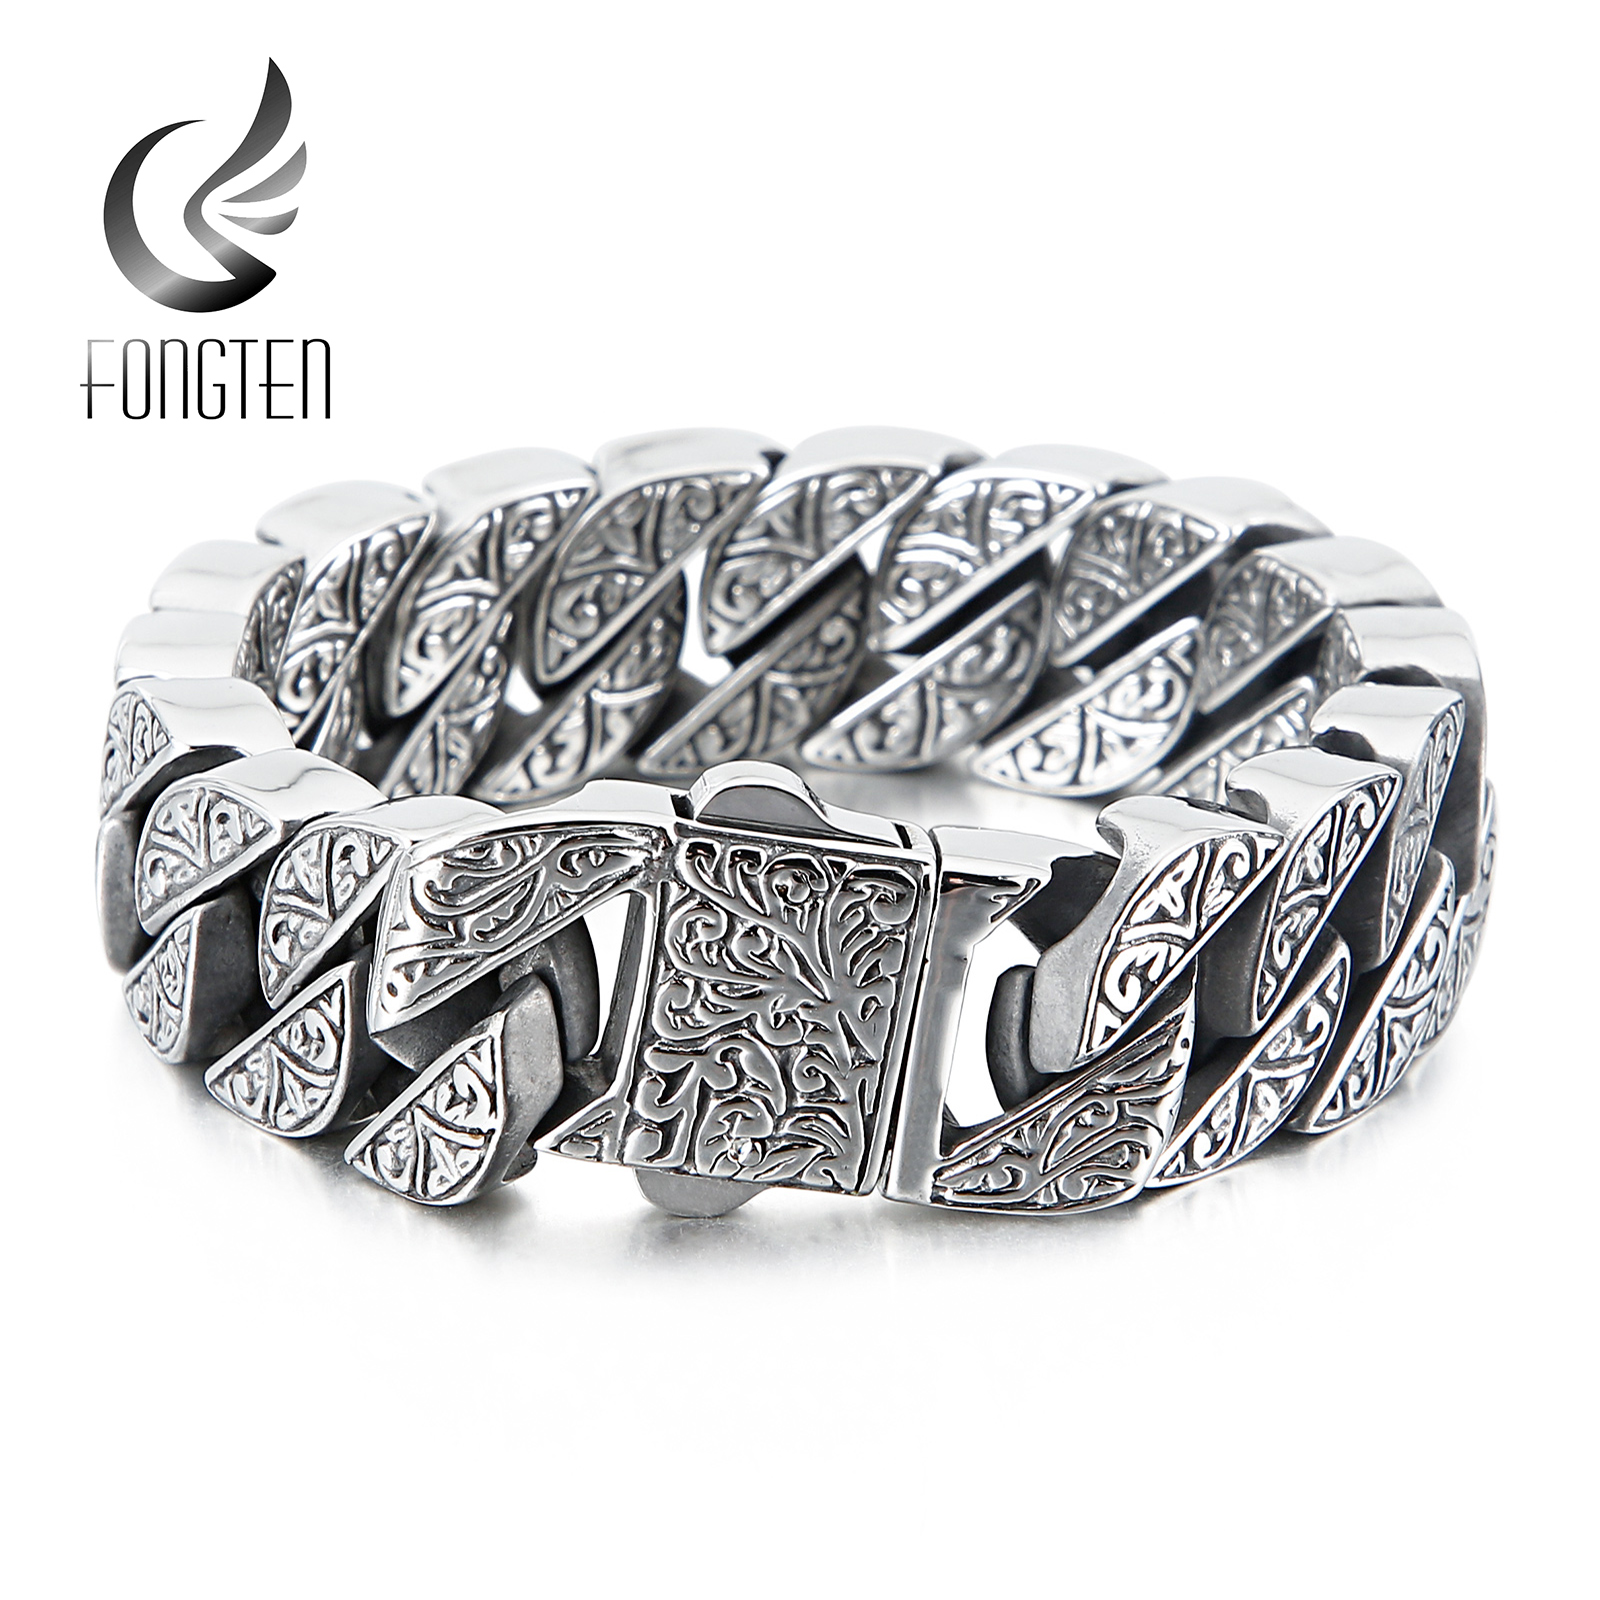 Fongten Vintage Style Bracelet Men's Unique Carving Cuban Link Chain Stainless Steel Men Bracelets Bangle Fashion Jewelry